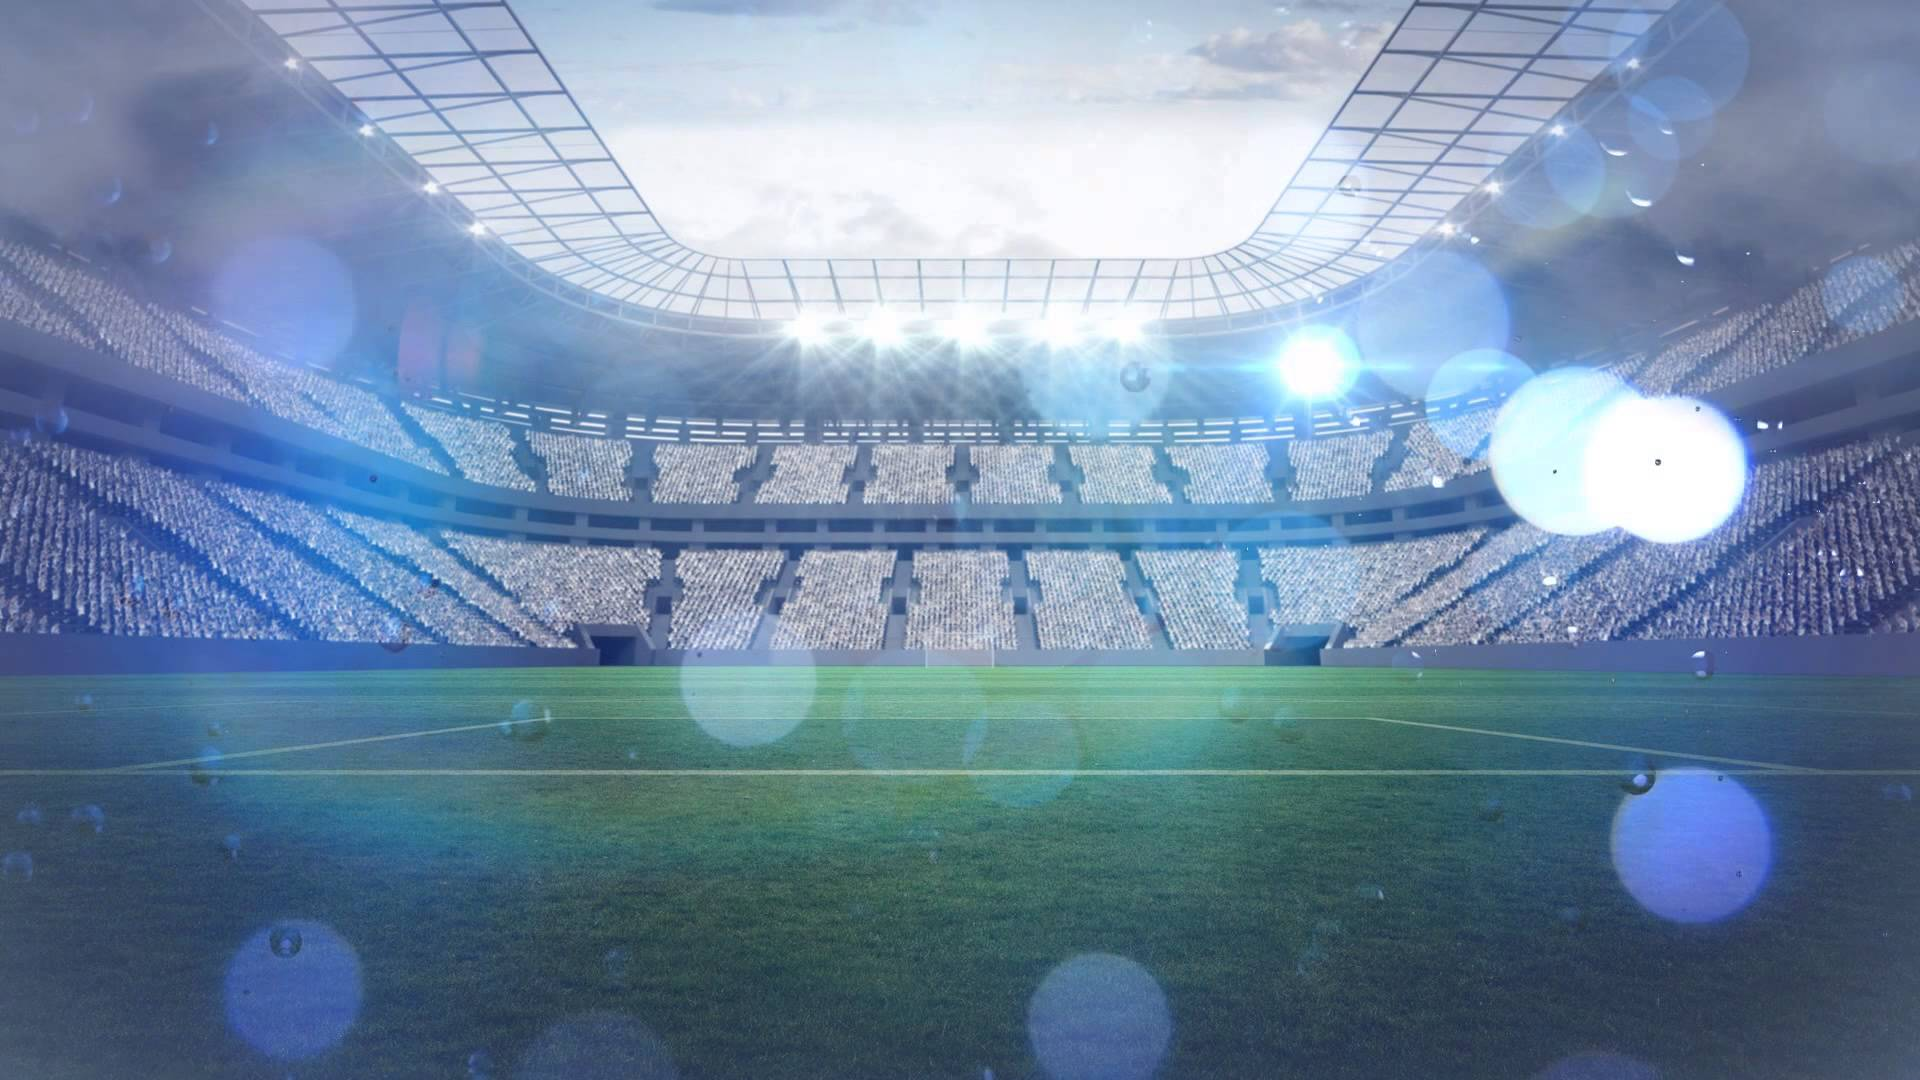 Soccer field  Footbull  Animated background 1920x1080